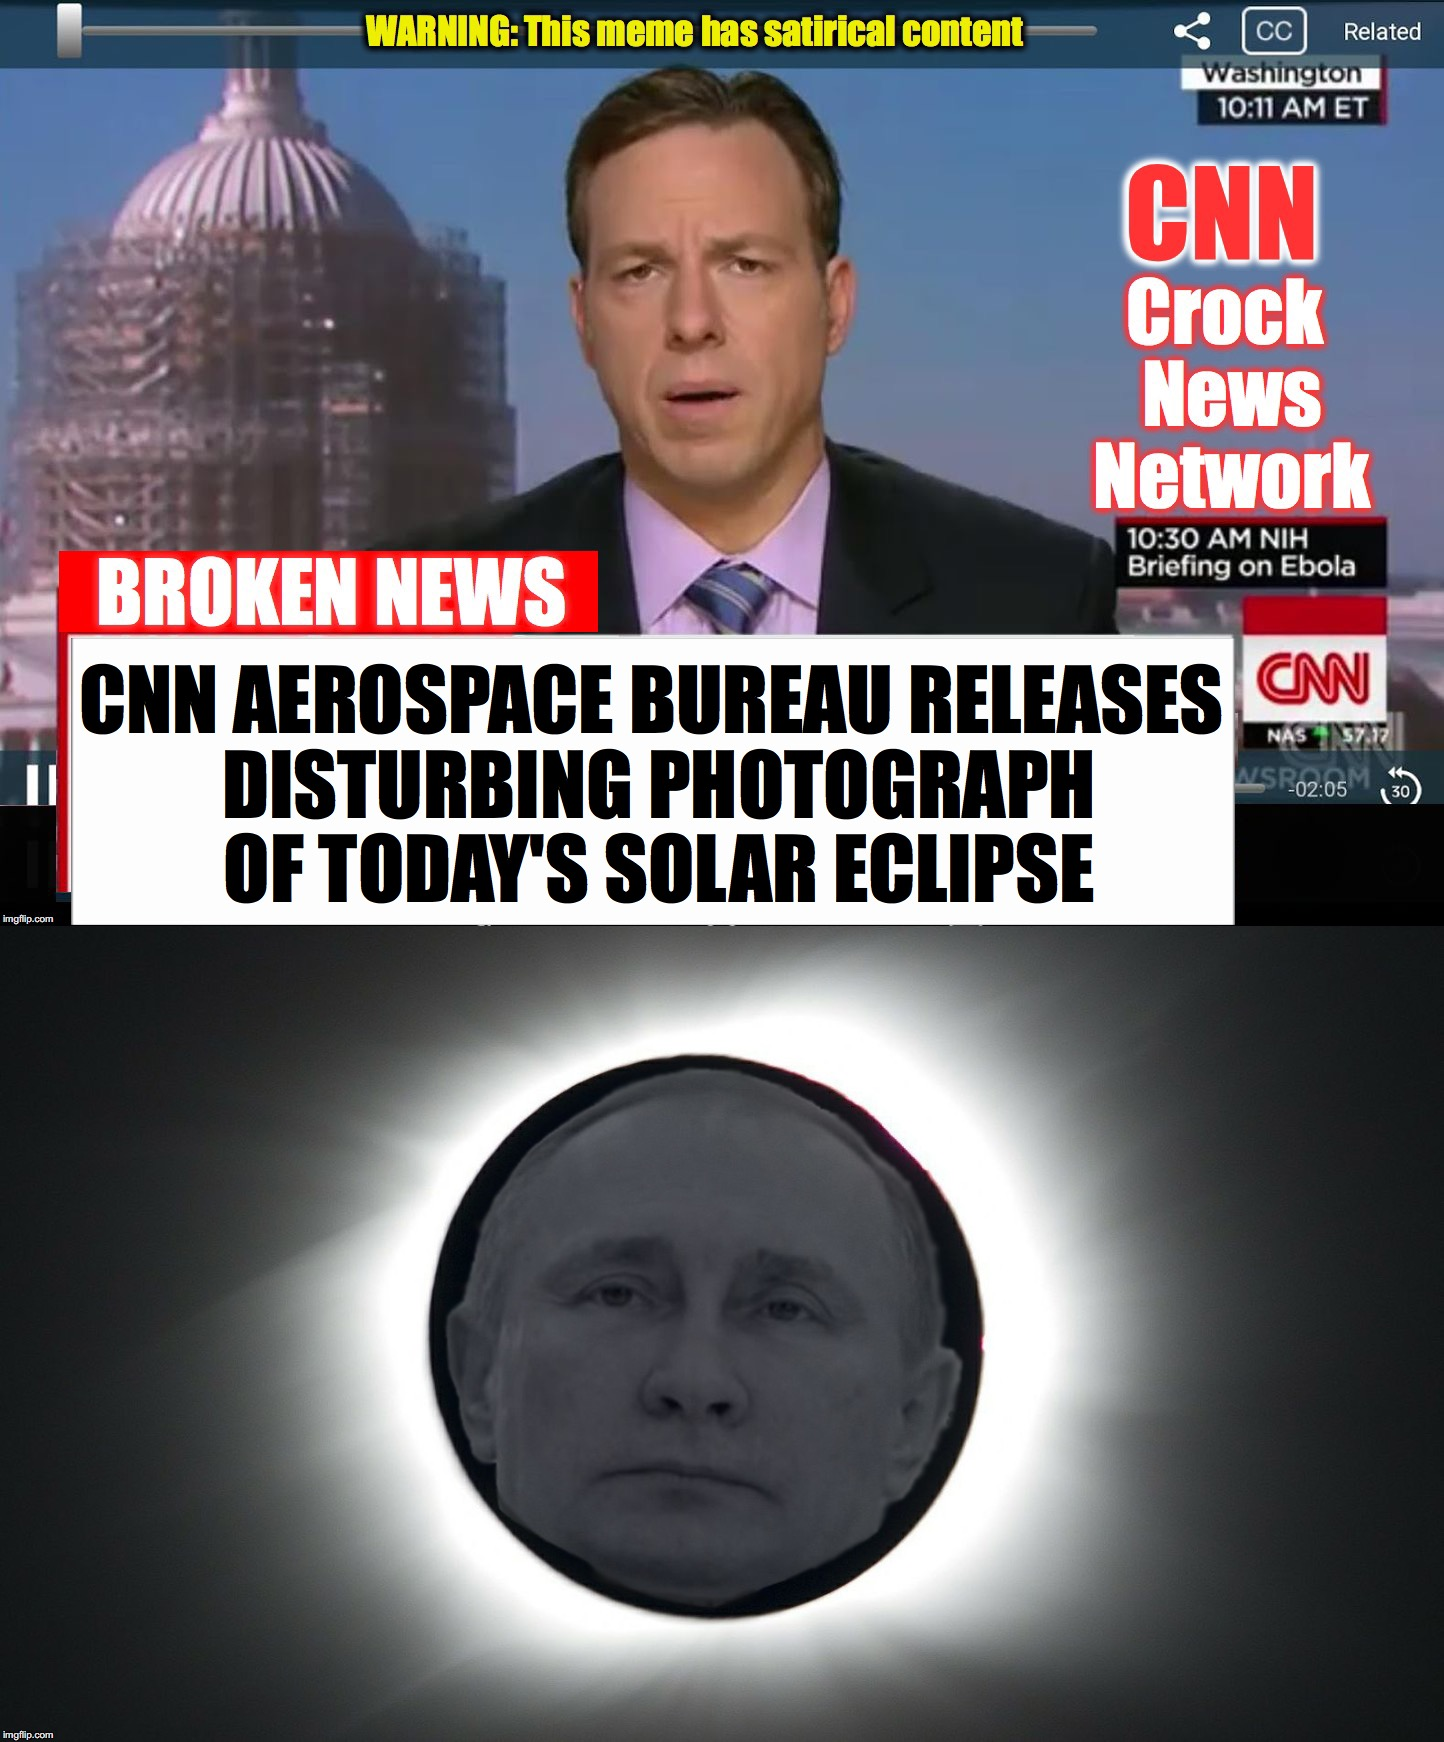 CNN AEROSPACE BUREAU RELEASES DISTURBING PHOTOGRAPH OF TODAY'S SOLAR ECLIPSE | image tagged in solar eclipse,cnn fake news | made w/ Imgflip meme maker